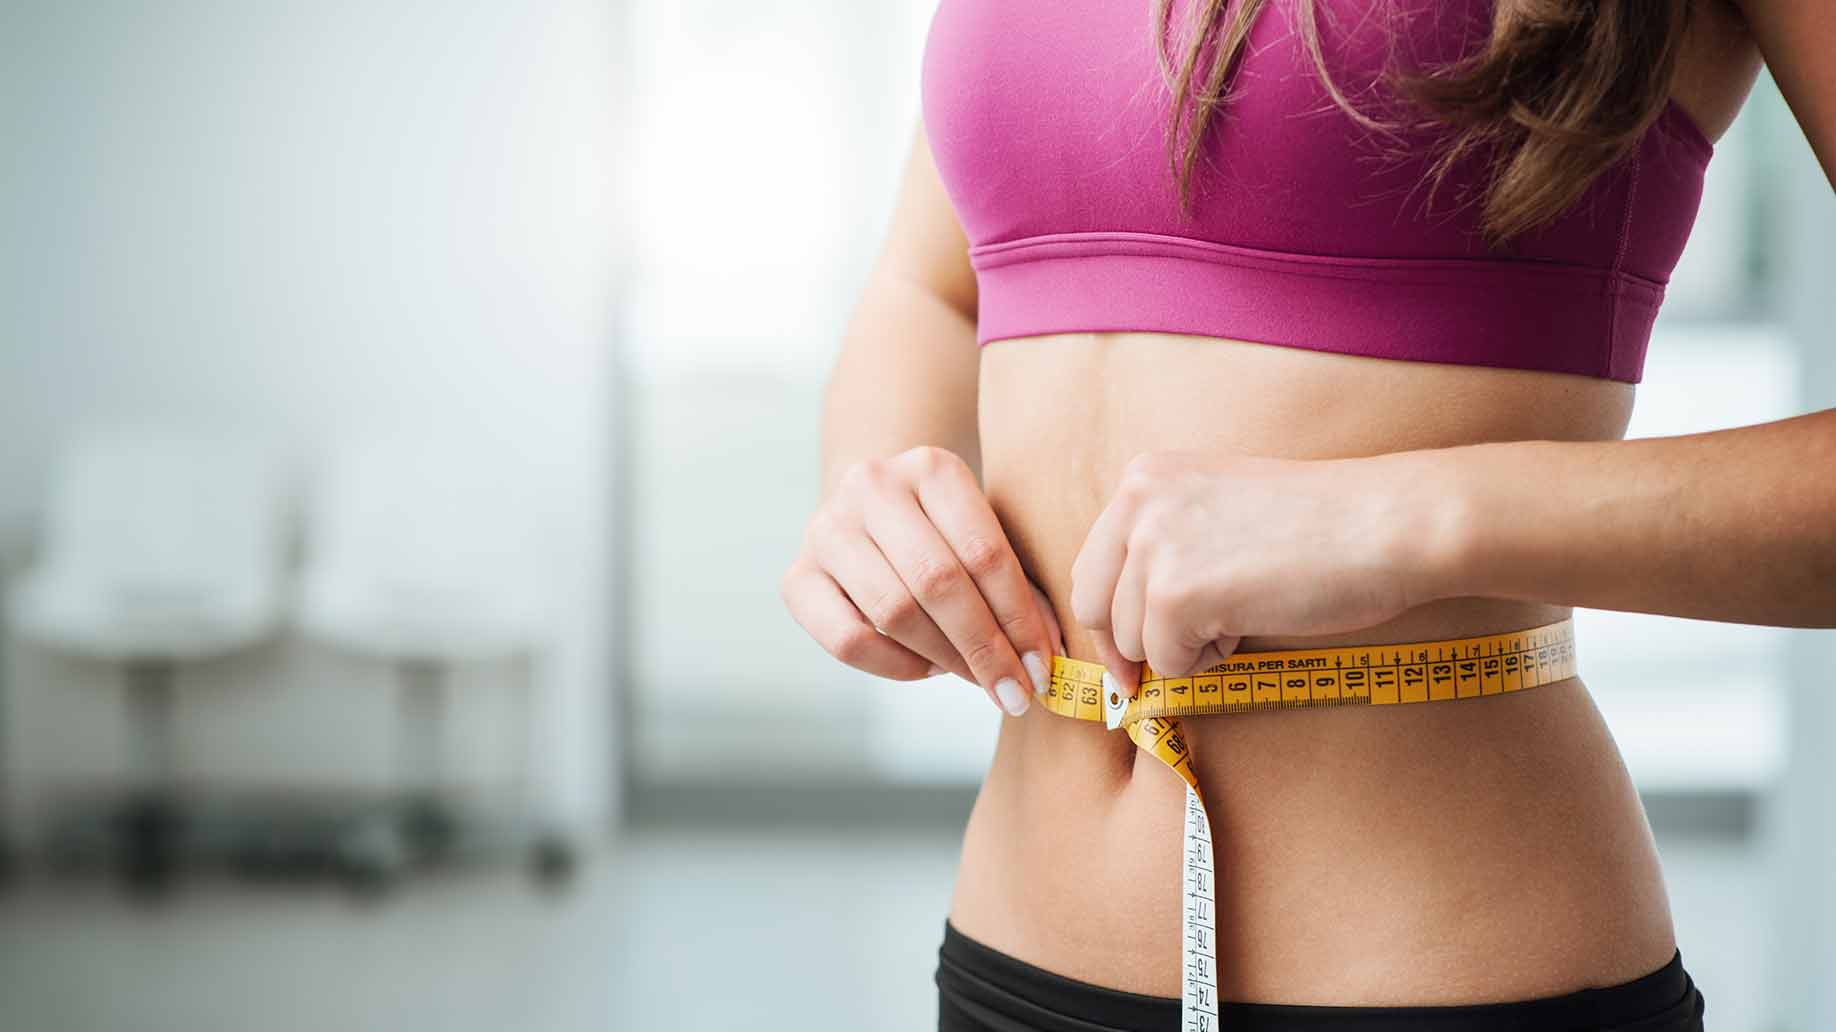 How To Get Rid Of Love Handles